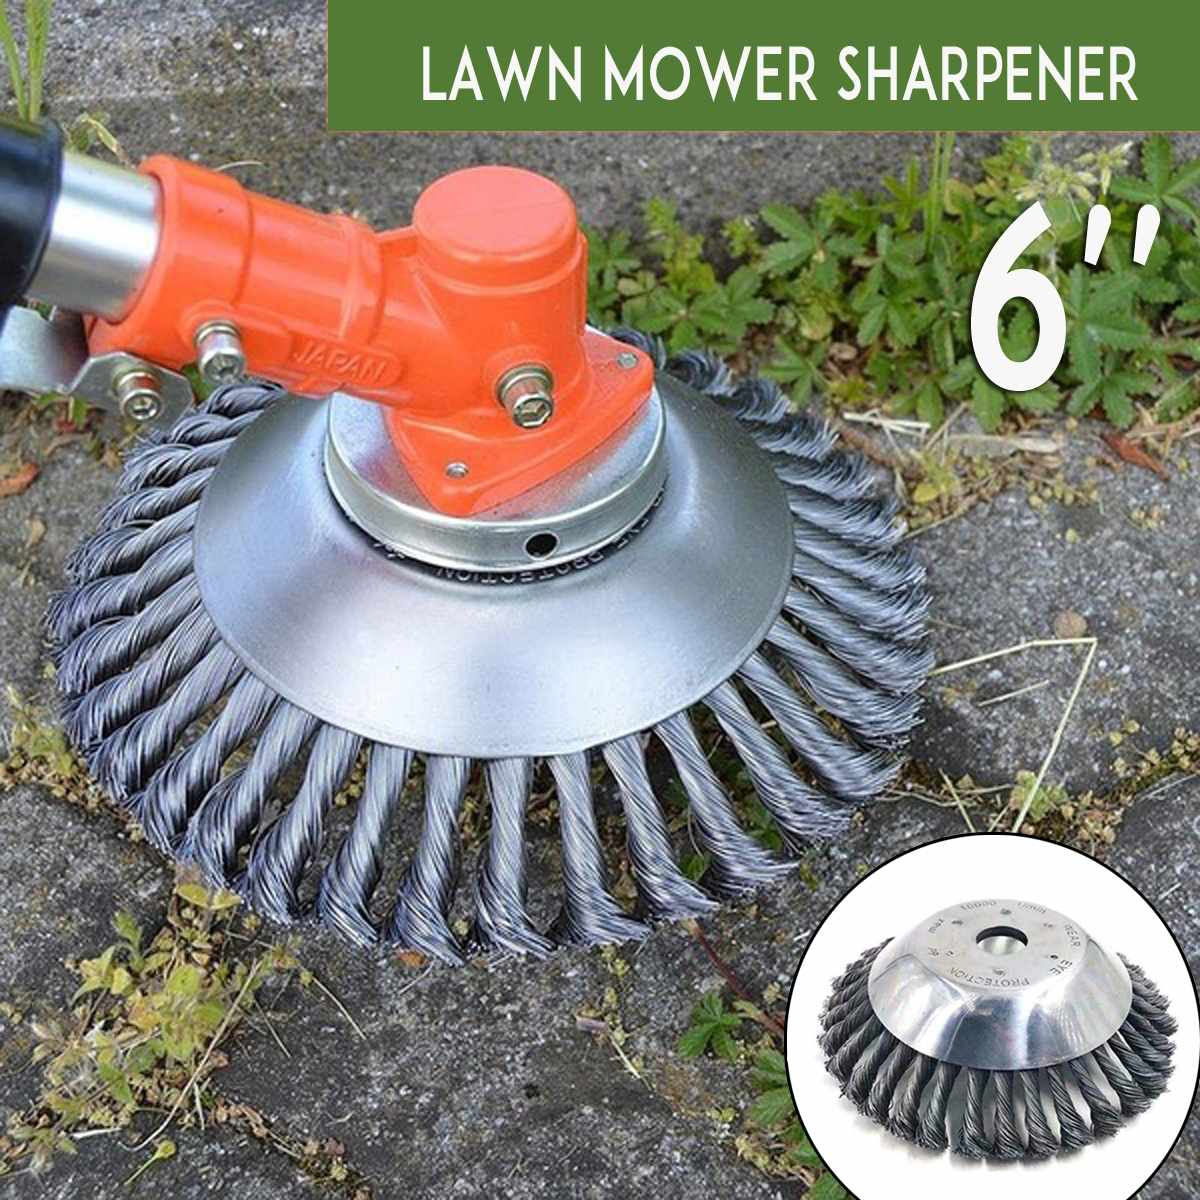 6 Inc Steel Wire Grass Trimmer Head Tray Brush Cutter Rotary Wheel Edge Head Dust Removal Safe Strimmer For Lawn Mover Part Tool